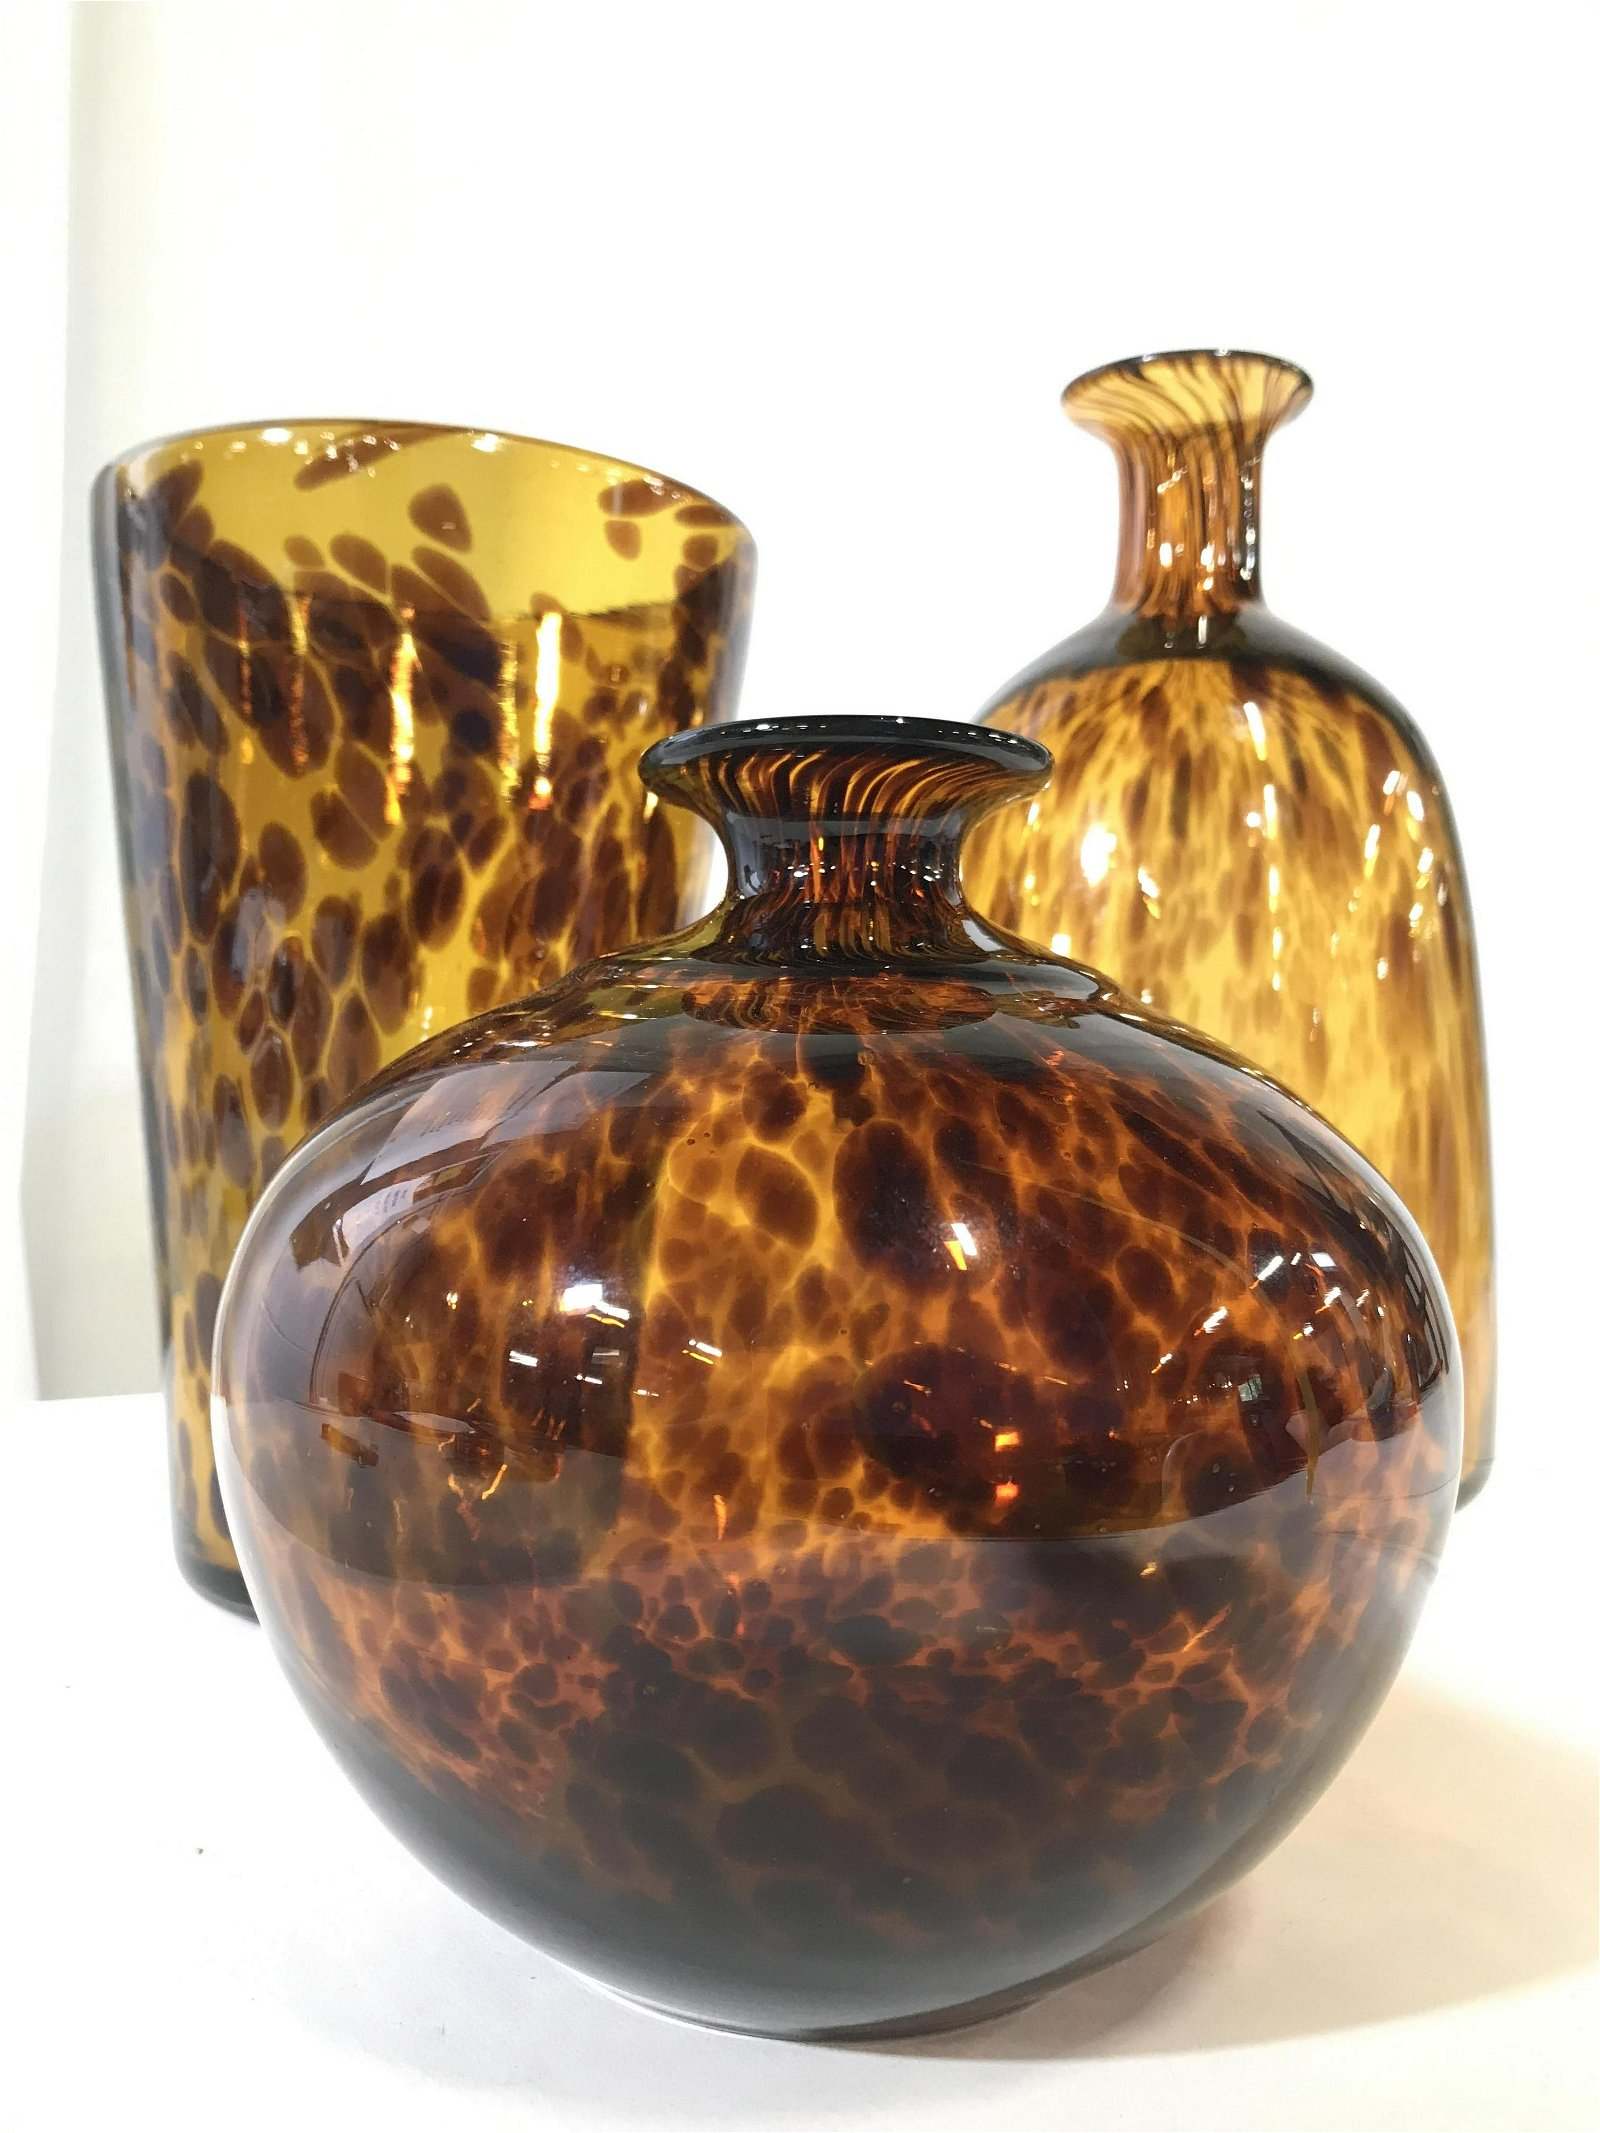 Lot 3 TWOS COMPANY Matching Art Glass Vases